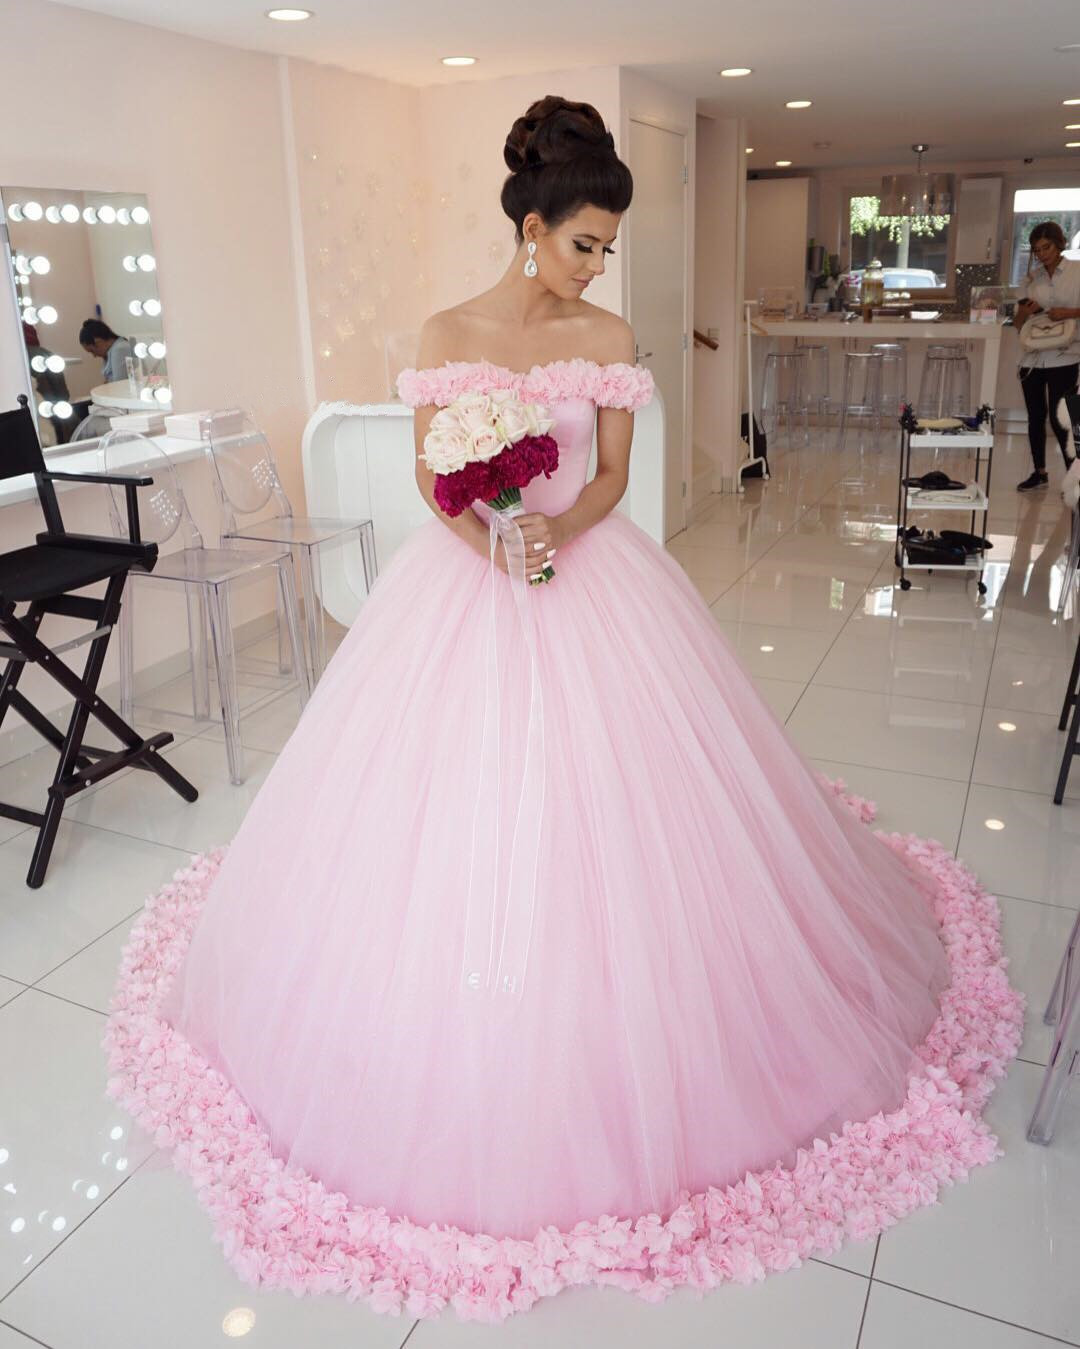 Pink Wedding Dresses: Pink Wedding Dress, Princess Wedding Dress, Elegant